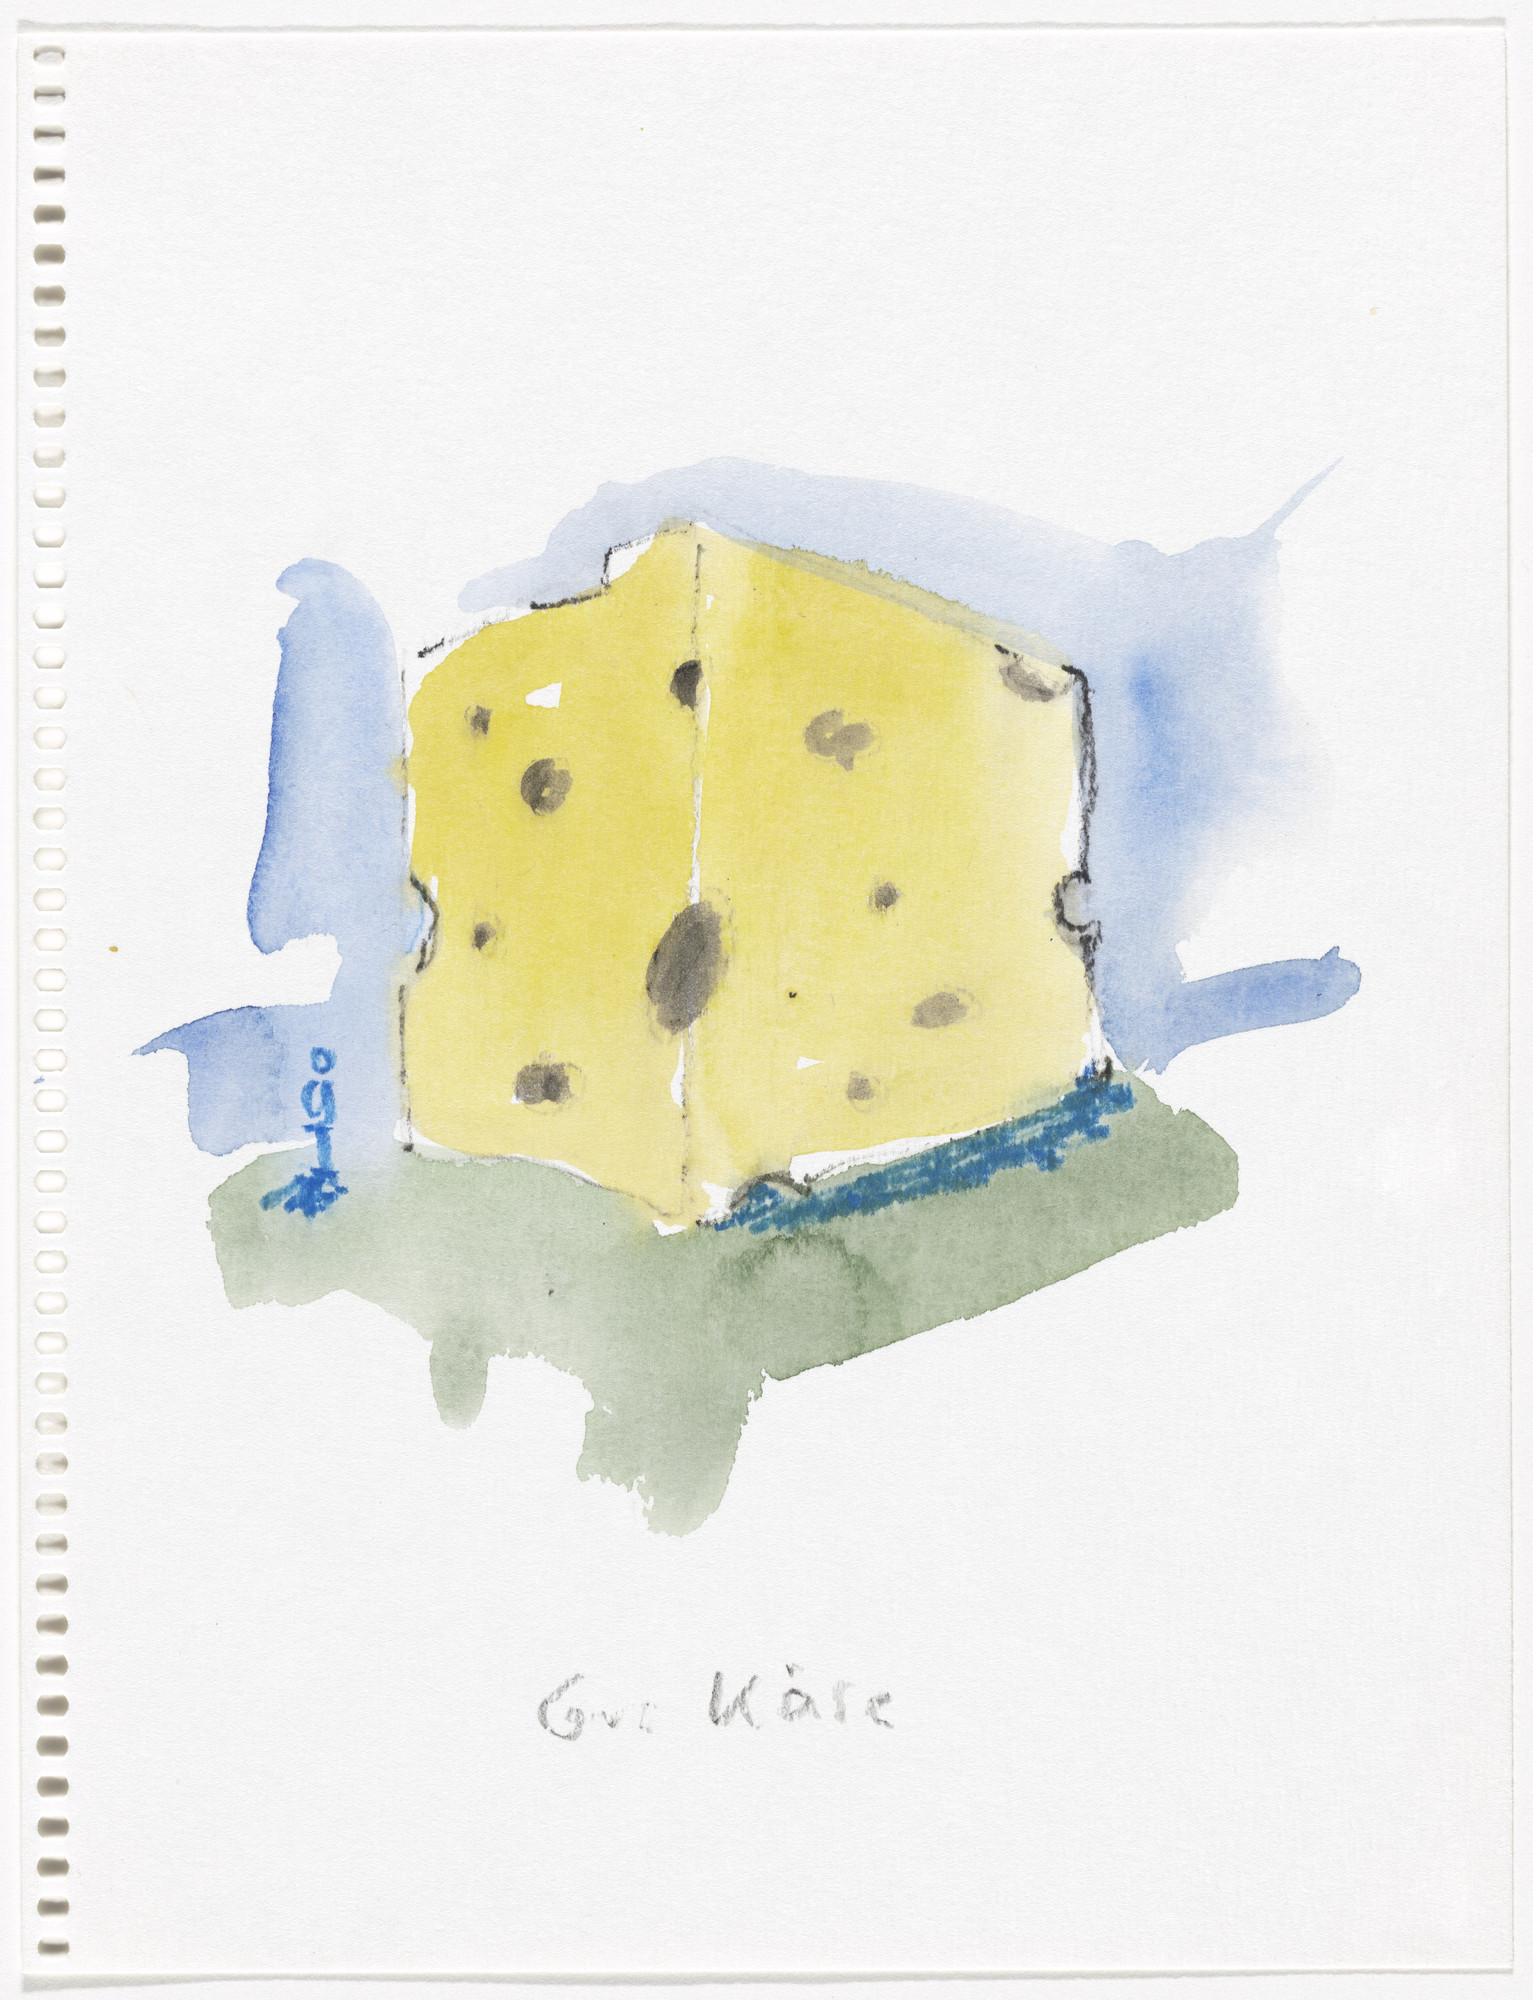 Thomas Schütte. Gut Käse (Good Cheese) from Aquarellen (Watercolors). 1987